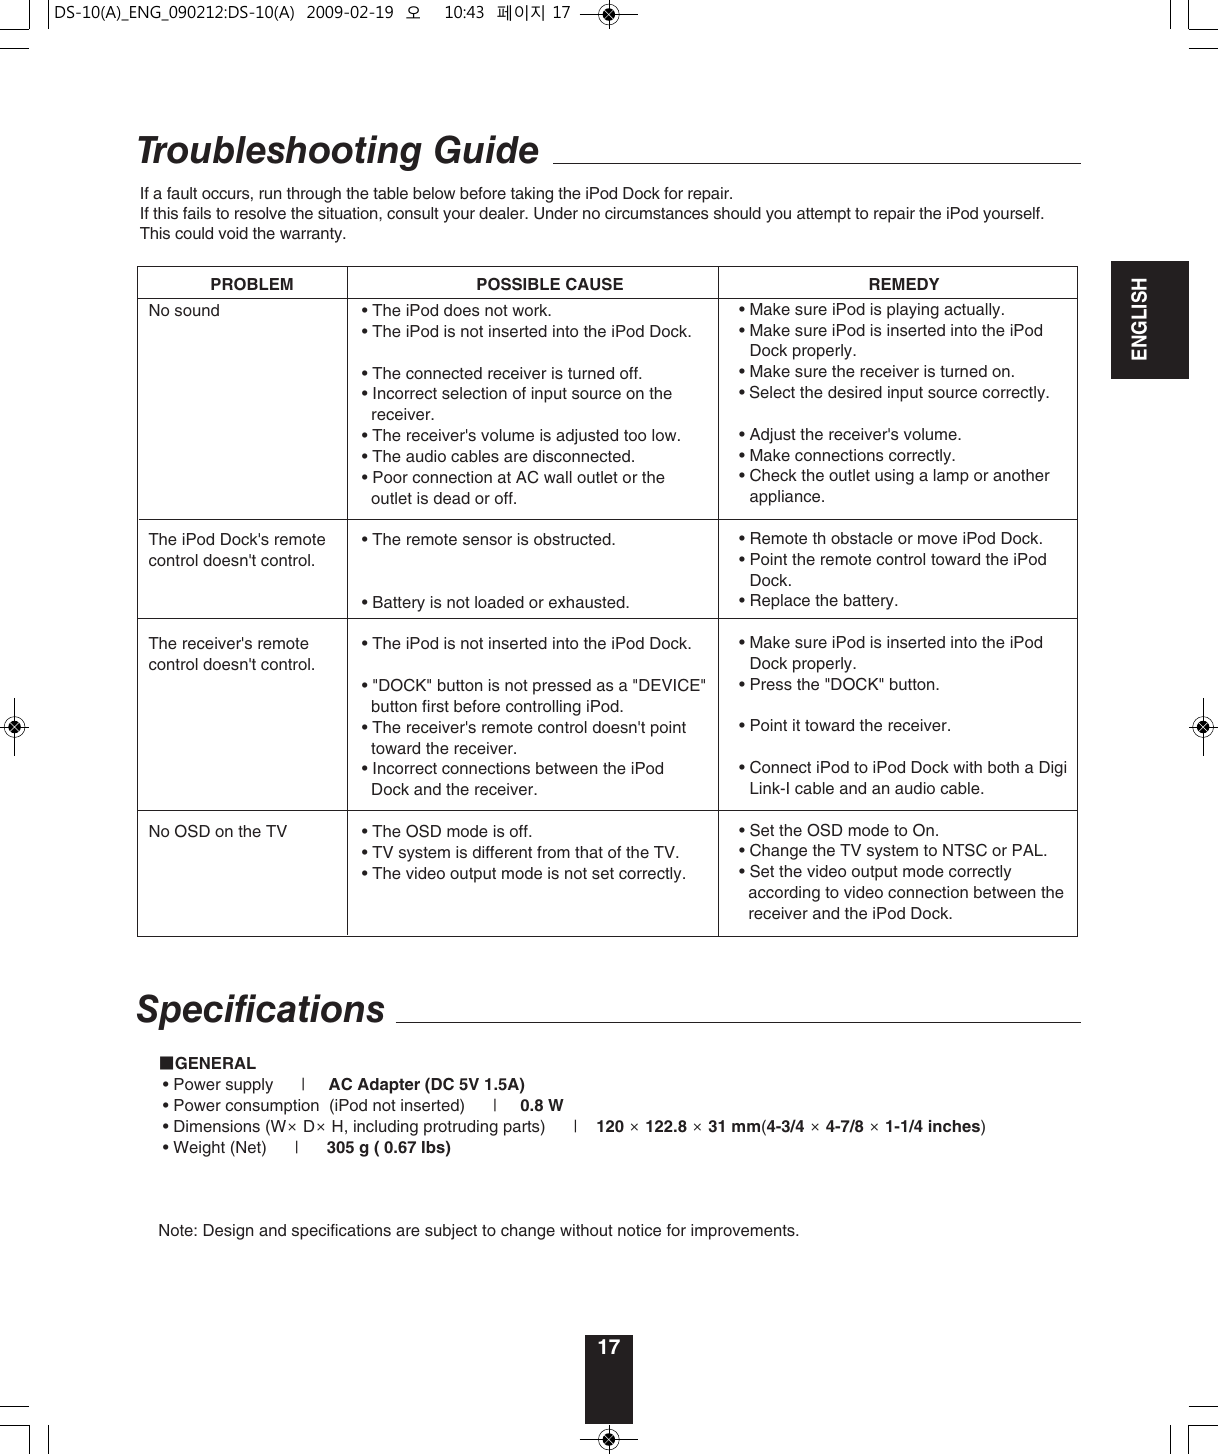 Sherwood Ds 10 Users Manual 10(A)